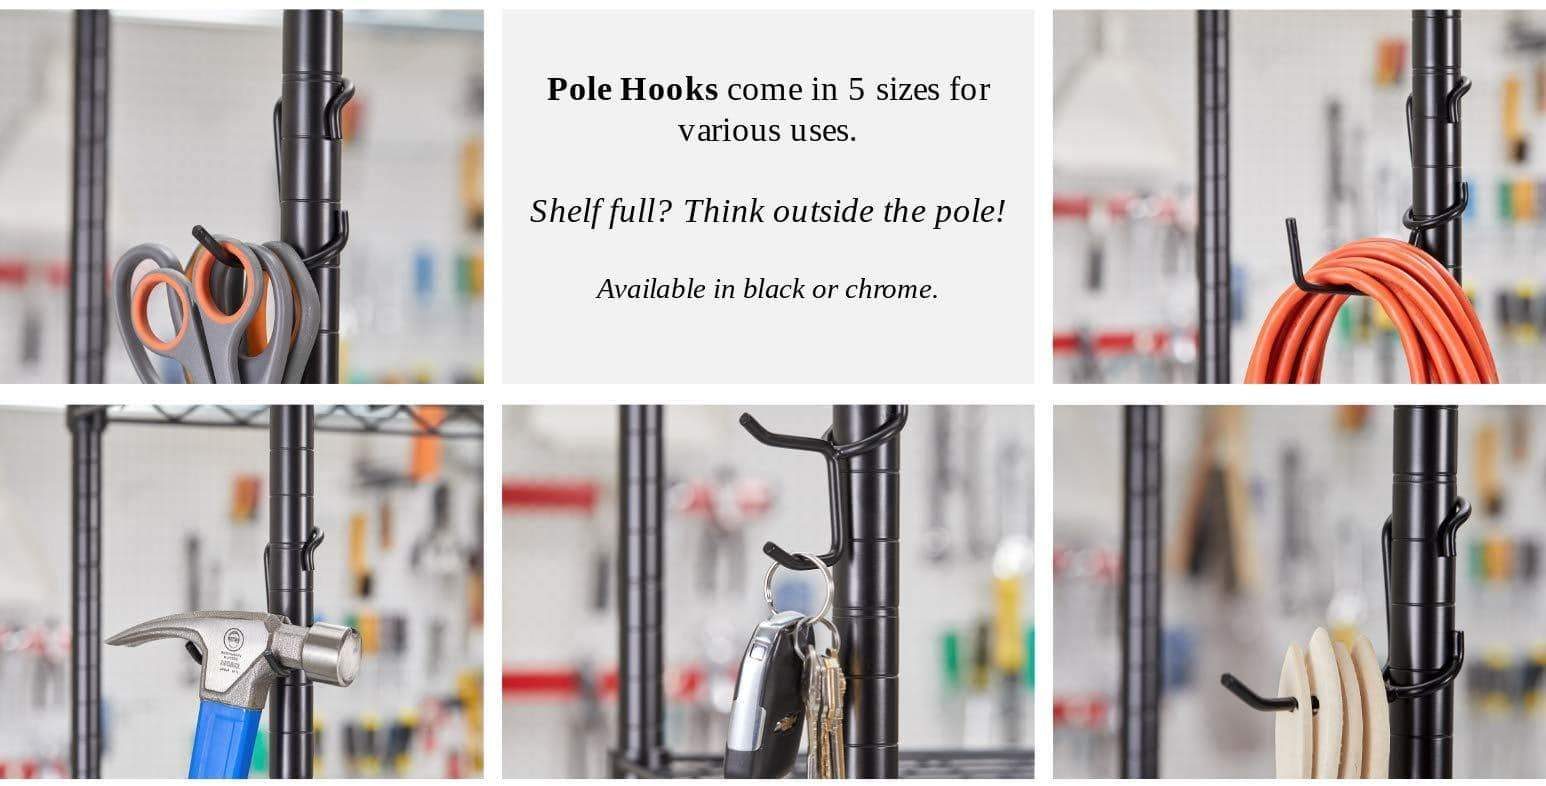 Discover the sunway shelf pole hooks 5 pack chrome coat hat hook best solution for garage shelving storage organization use with metal or wire shelves and racks heavy duty easy installation